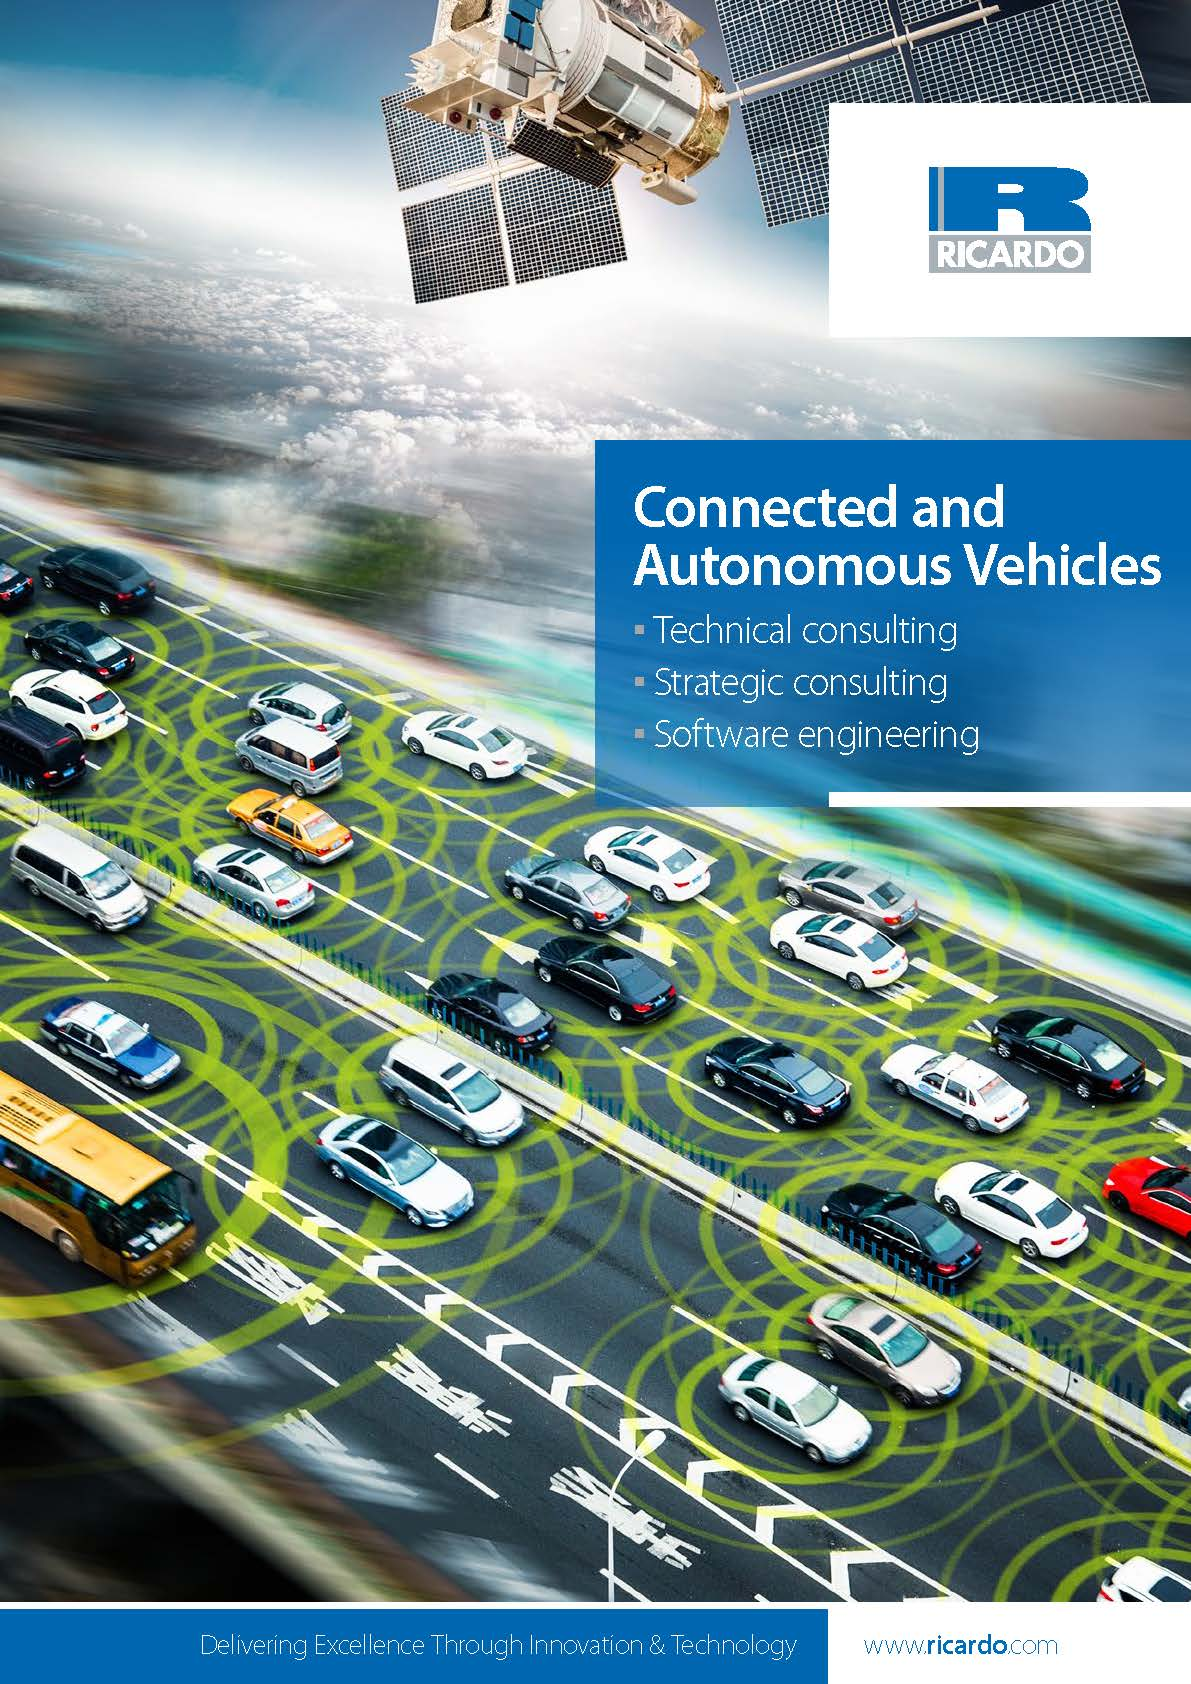 Self Driving Car >> Connected and Autonomous Vehicles - Global engineering ...